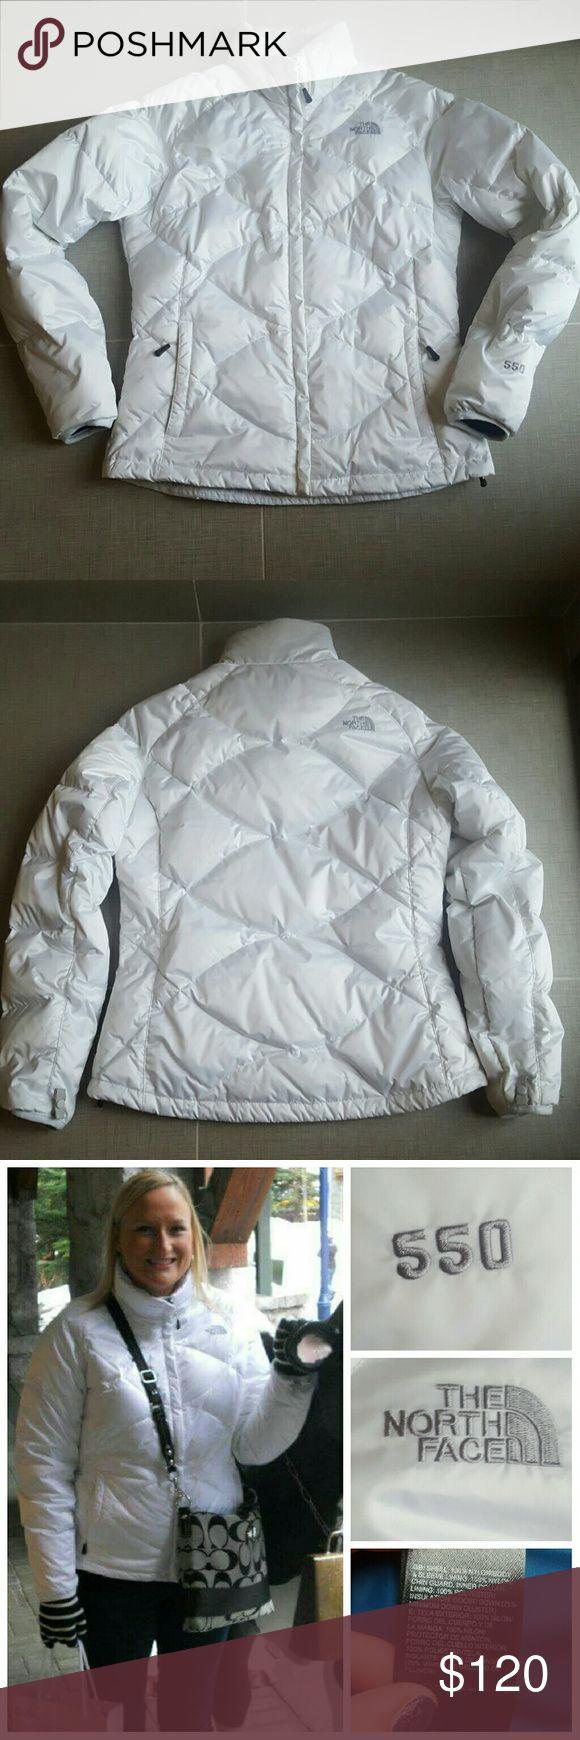 """North Face Down Coat The North Face 550 down jacket in white with gray logo and blue inside. Pockets have zippers, all zippers work perfectly. Measures 22"""" armpit to armpit, 26"""" long and sleeves are 22"""" long from armpit to wrist. In excellent condition, no stains, rips, holes, etc. All photos are of actual coat for sale, purchased at Nordstrom. No trades. Bundle and save!!! North Face Jackets & Coats Puffers"""